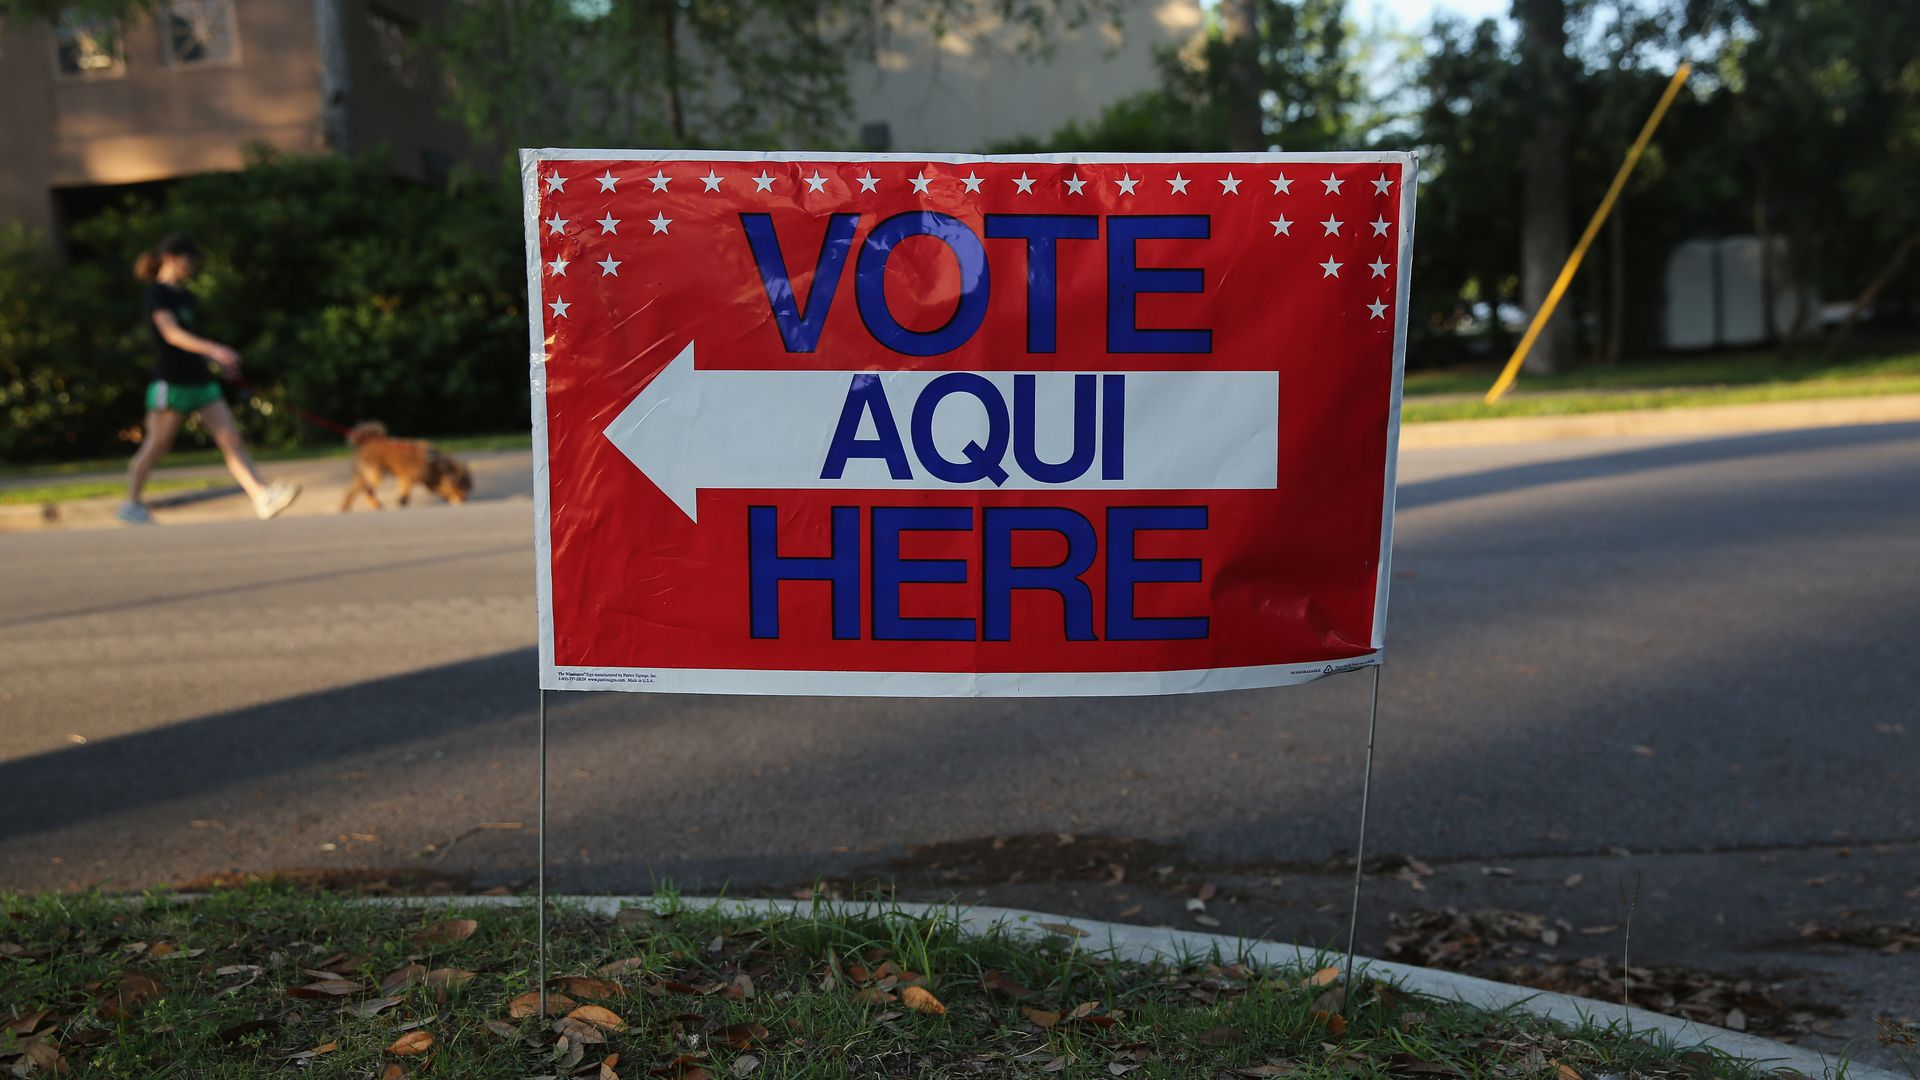 "In this image, a sign reads ""Vote Aqui Here"" on a lawn in a neighborhood."